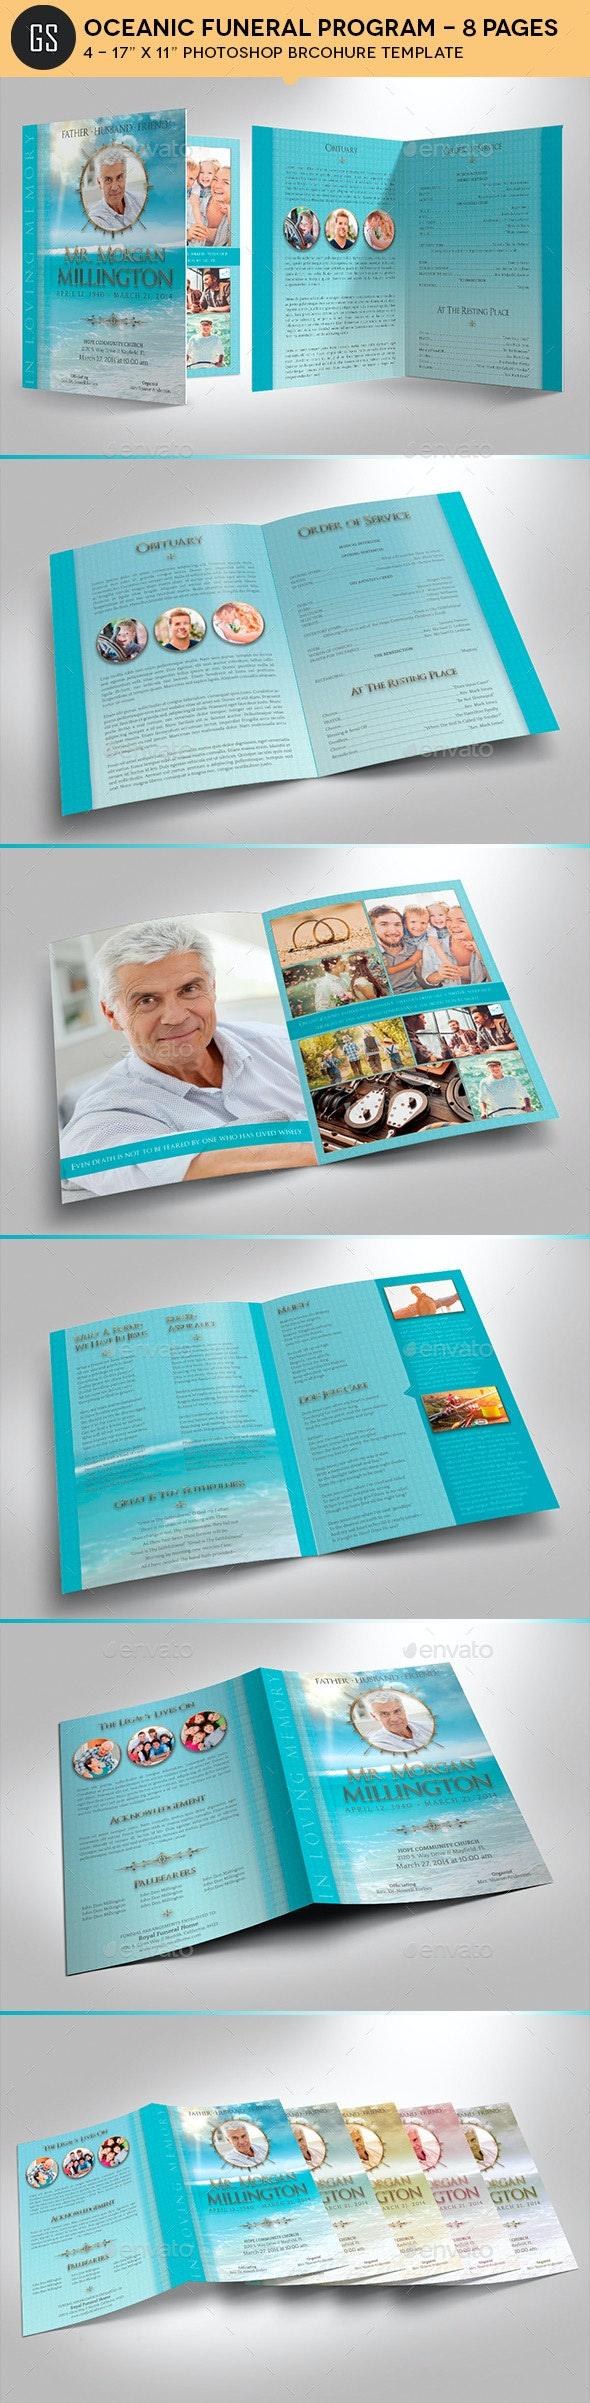 Oceanic Funeral Program Large Template - 8 Pages - Informational Brochures